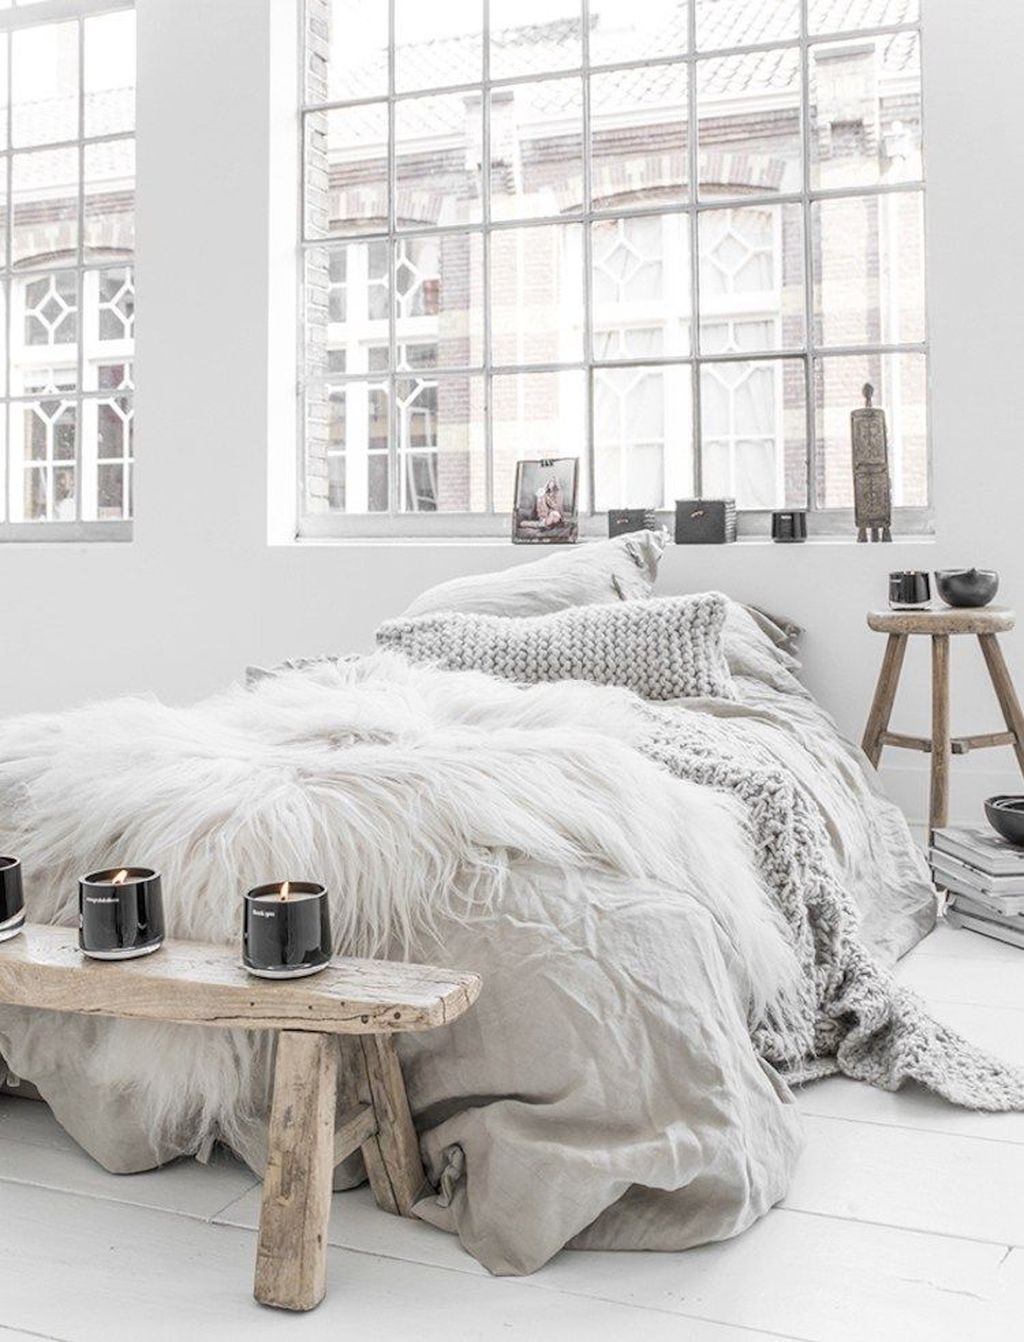 Master bedroom decor 2018   Stunning Bedroom Decor Ideas With Scandinavian Style in